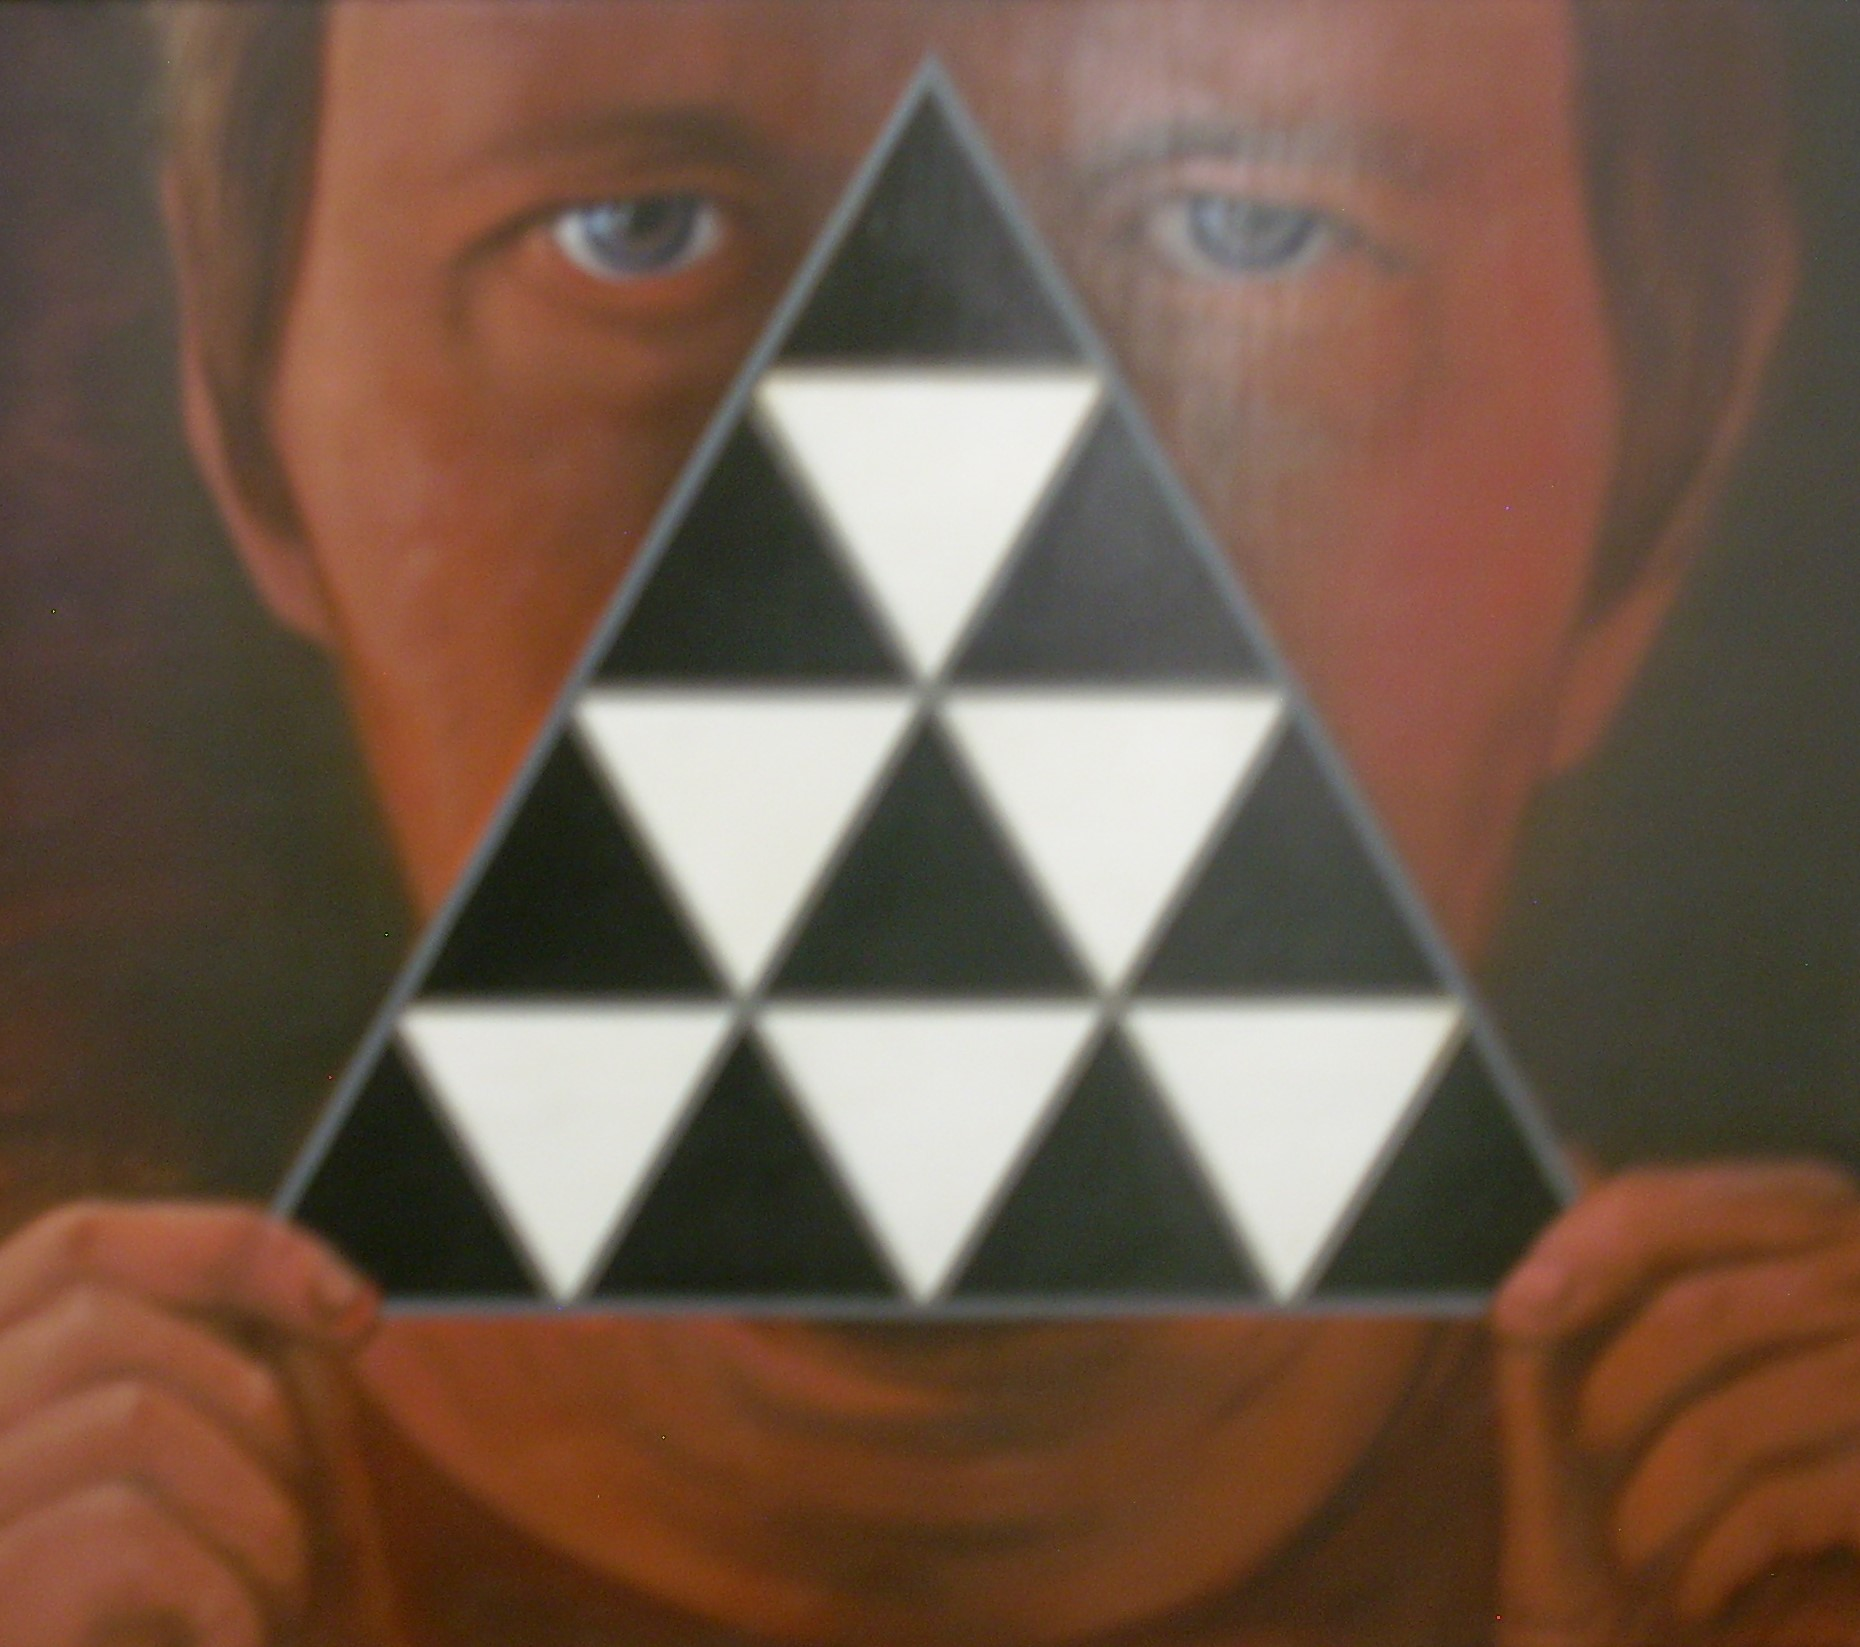 "Title: Self Portrait With Triangle  Artist:  Frank Jakum   Medium: Acrylic on Canvas  Dimensions: 20 1/2"" x 24""  Framed: Yes  Price: Contact for Inquiry"